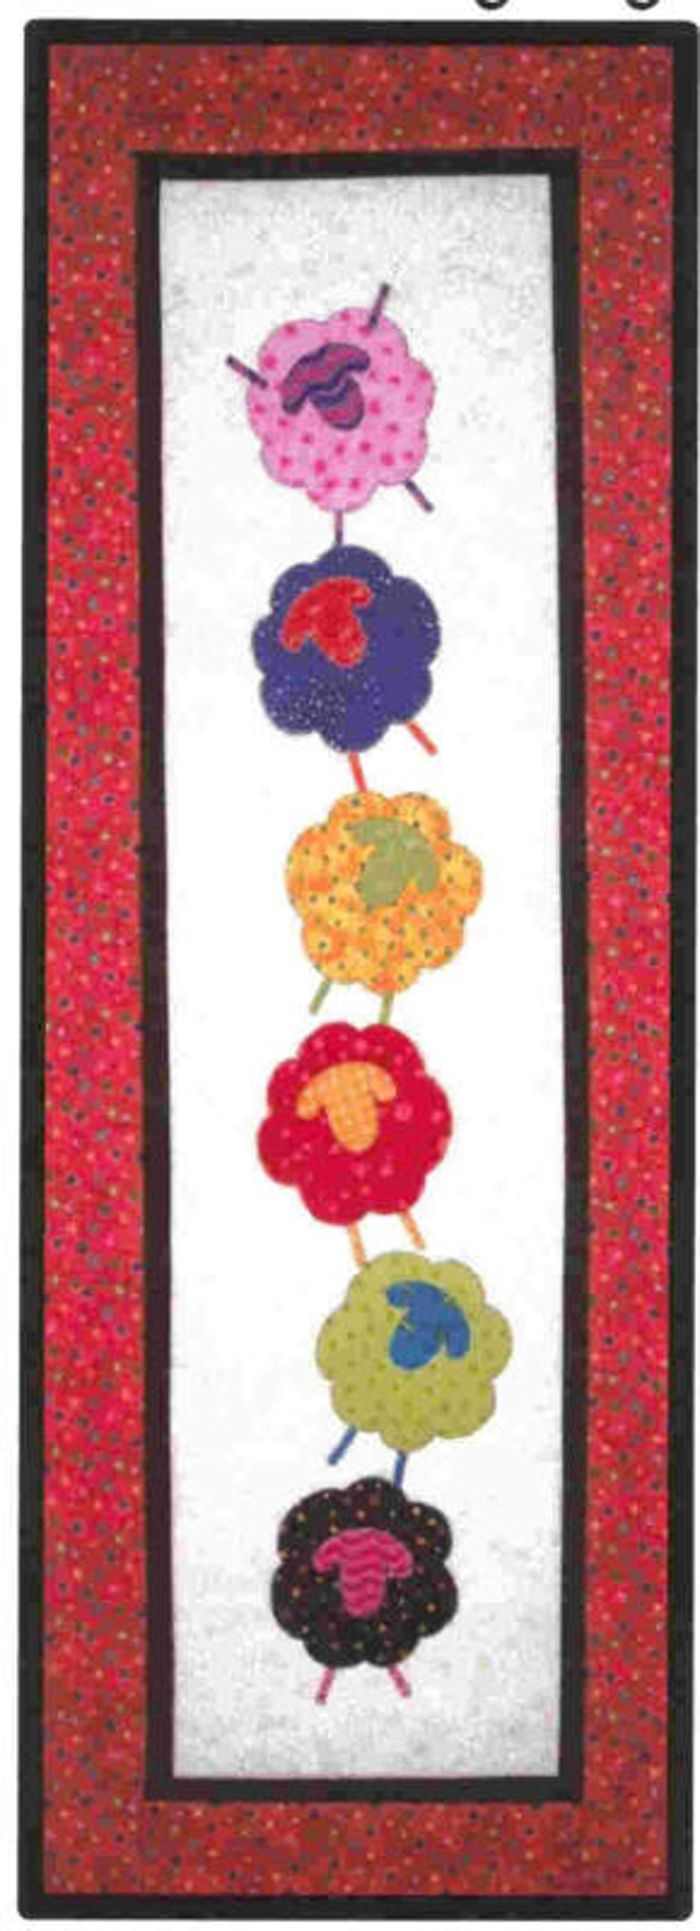 Wall Hanging Quilt Patterns 103 best animal & nature quilts images on pinterest | quilted wall